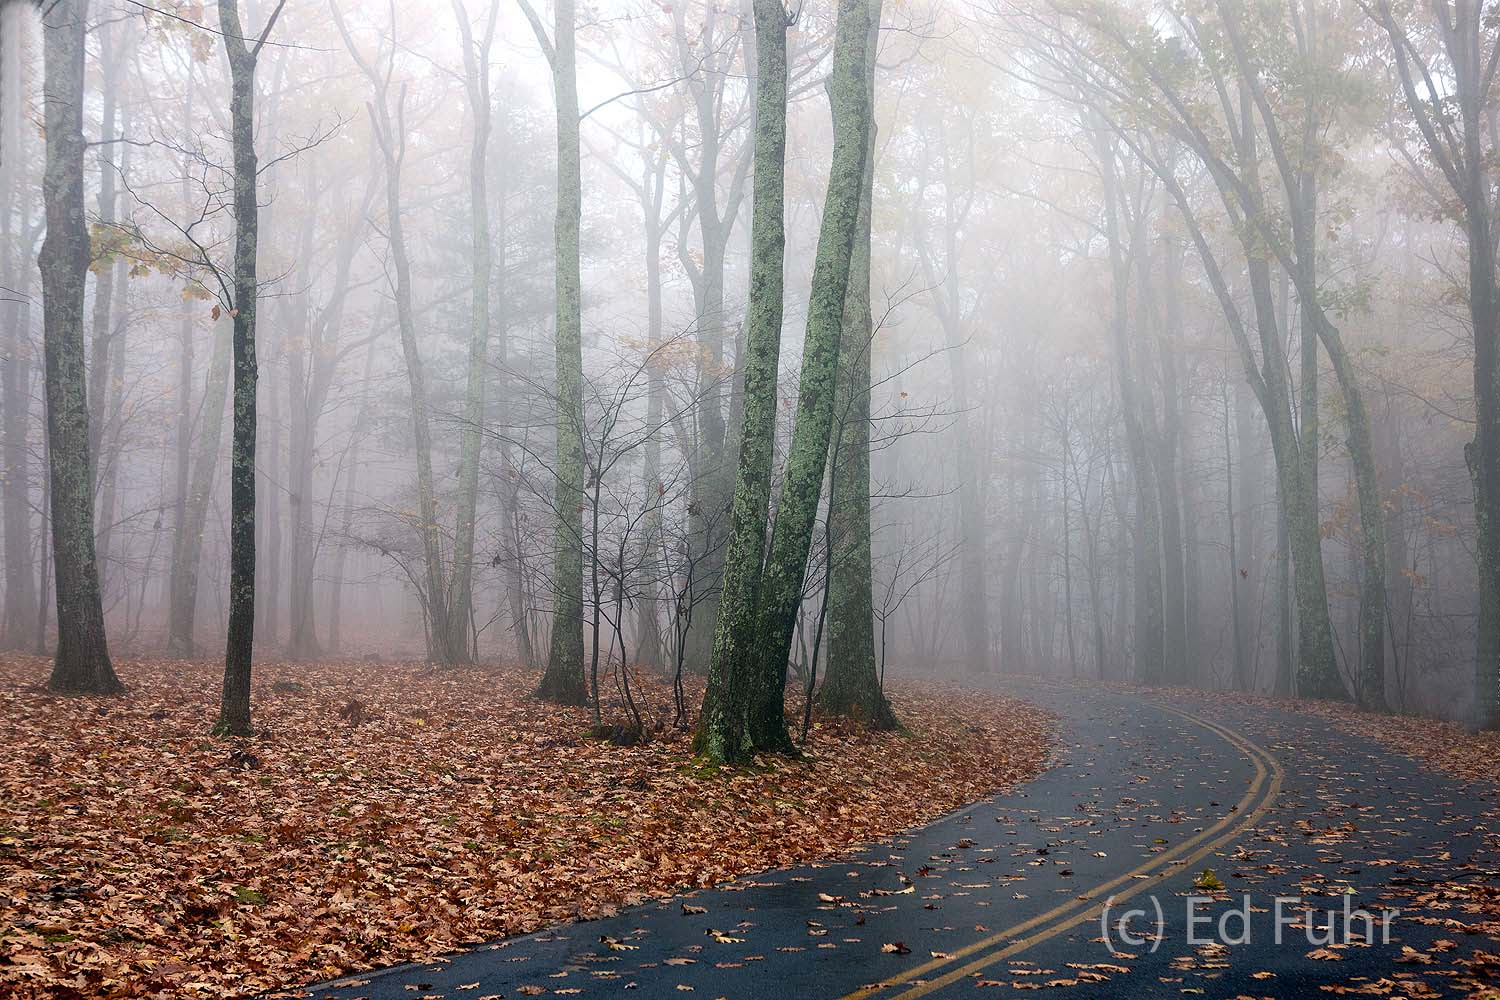 Shenandoah, Shenandoah National Park, photo, photography, images, mountains, wilderness, Virginia, fall, autumn, foliage, color, photo